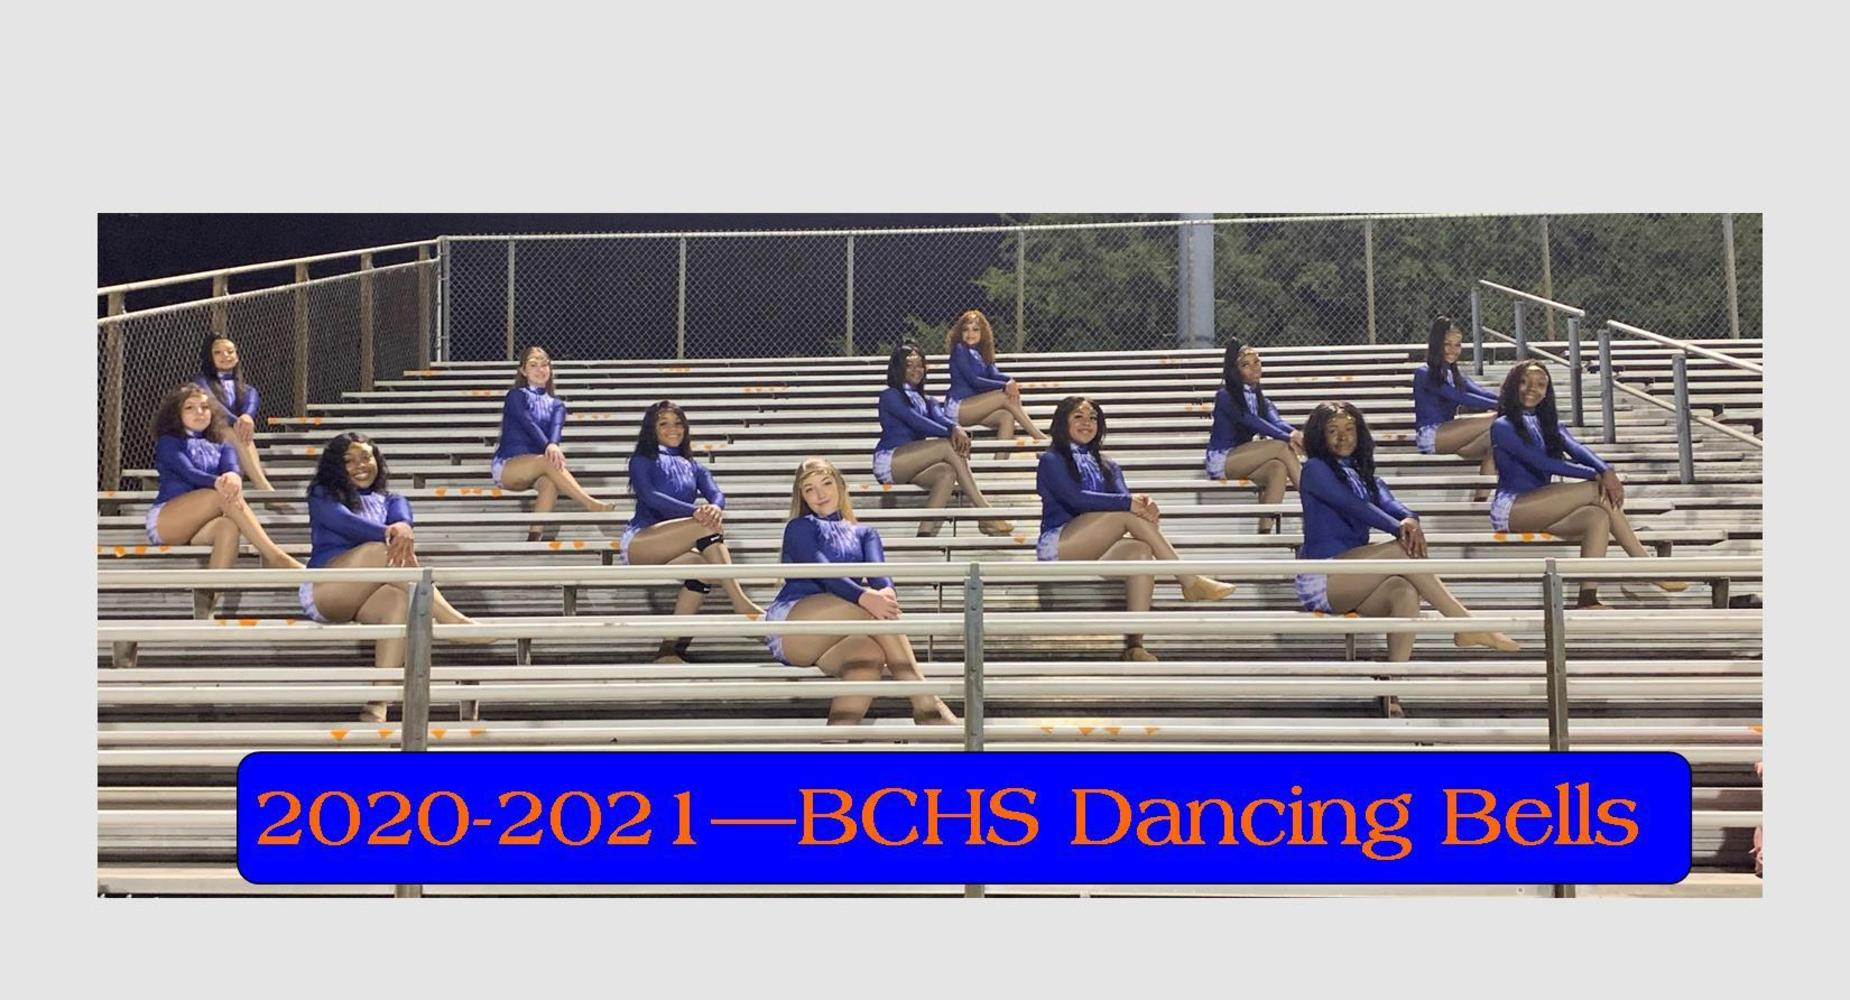 2020-2021 BCHS - Dancing Bells Team Member